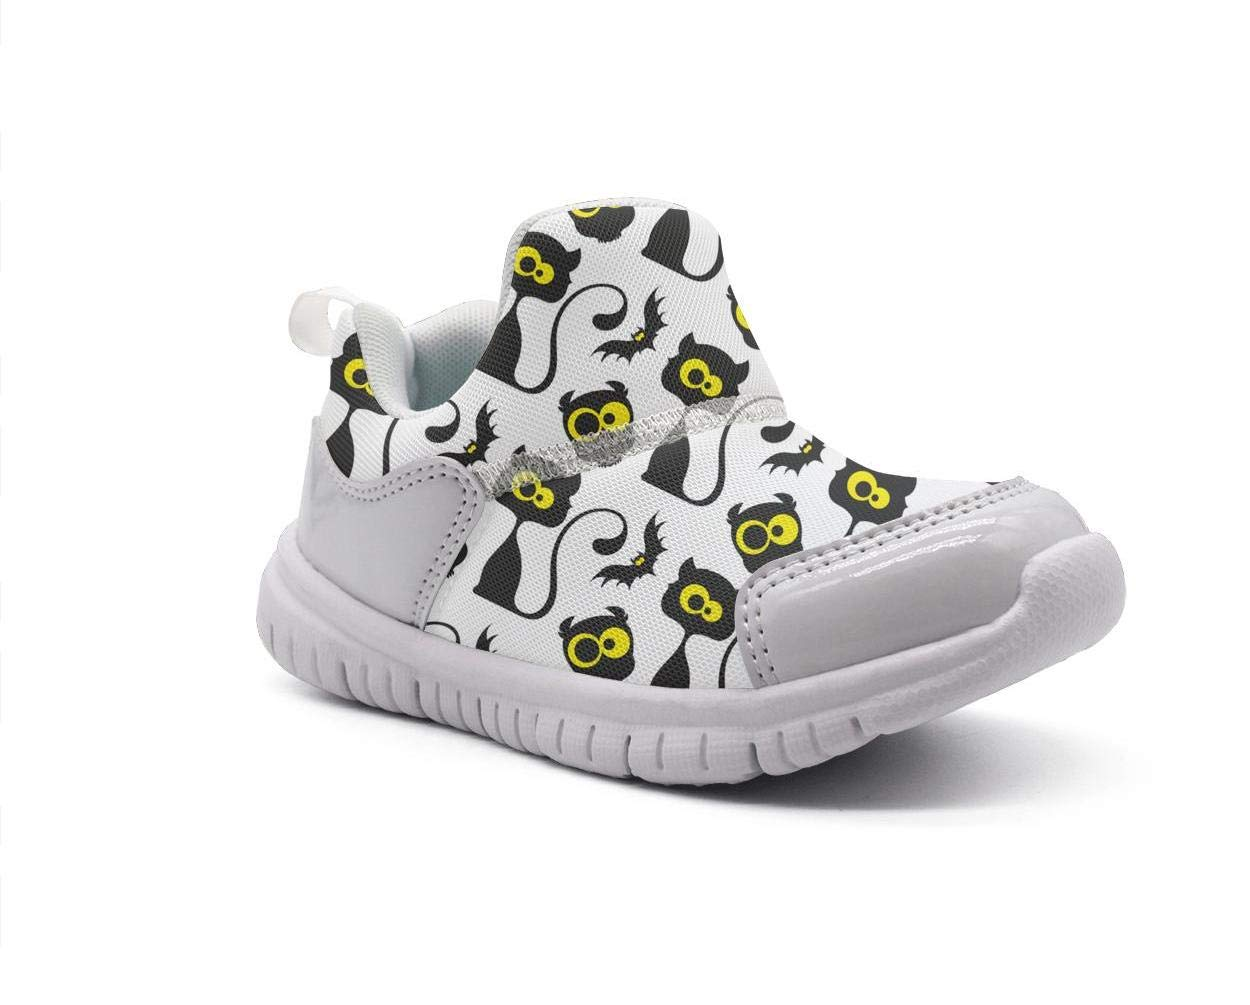 ONEYUAN Children Cute Black Cats and Bat Kid Casual Lightweight Sport Shoes Sneakers Walking Athletic Shoes